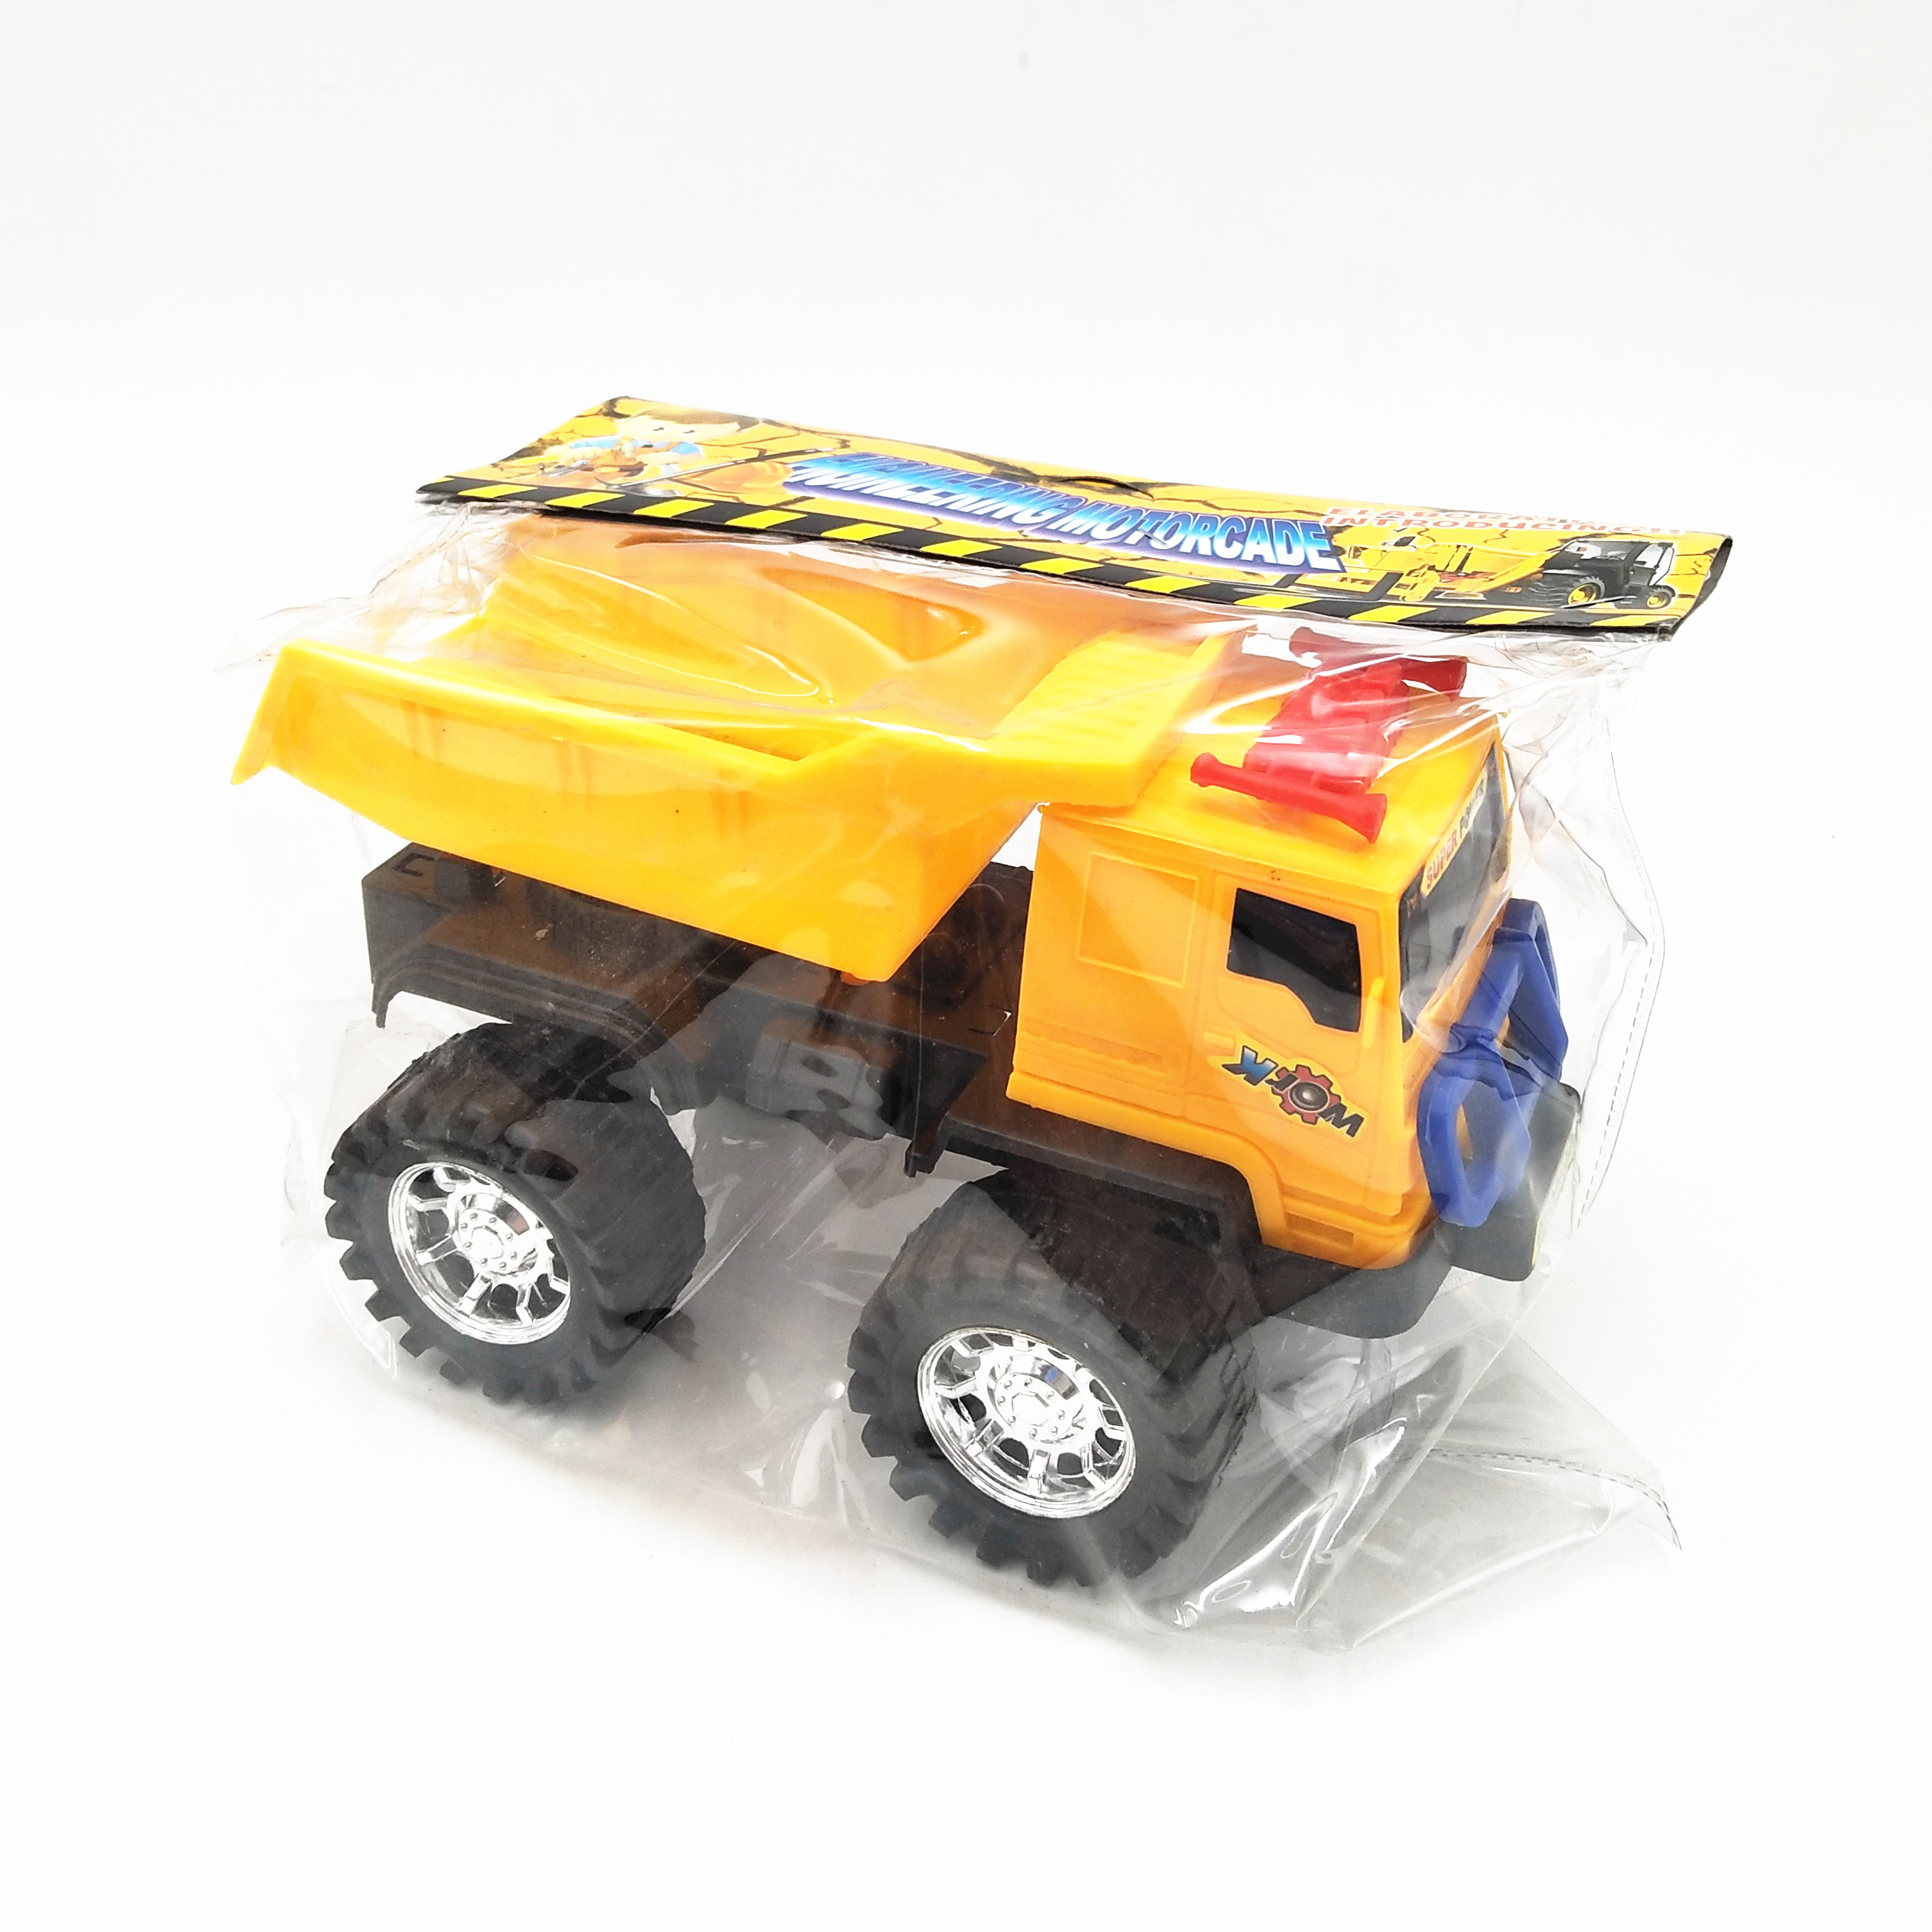 FREE WHEEL TRUCK TOY LY1719